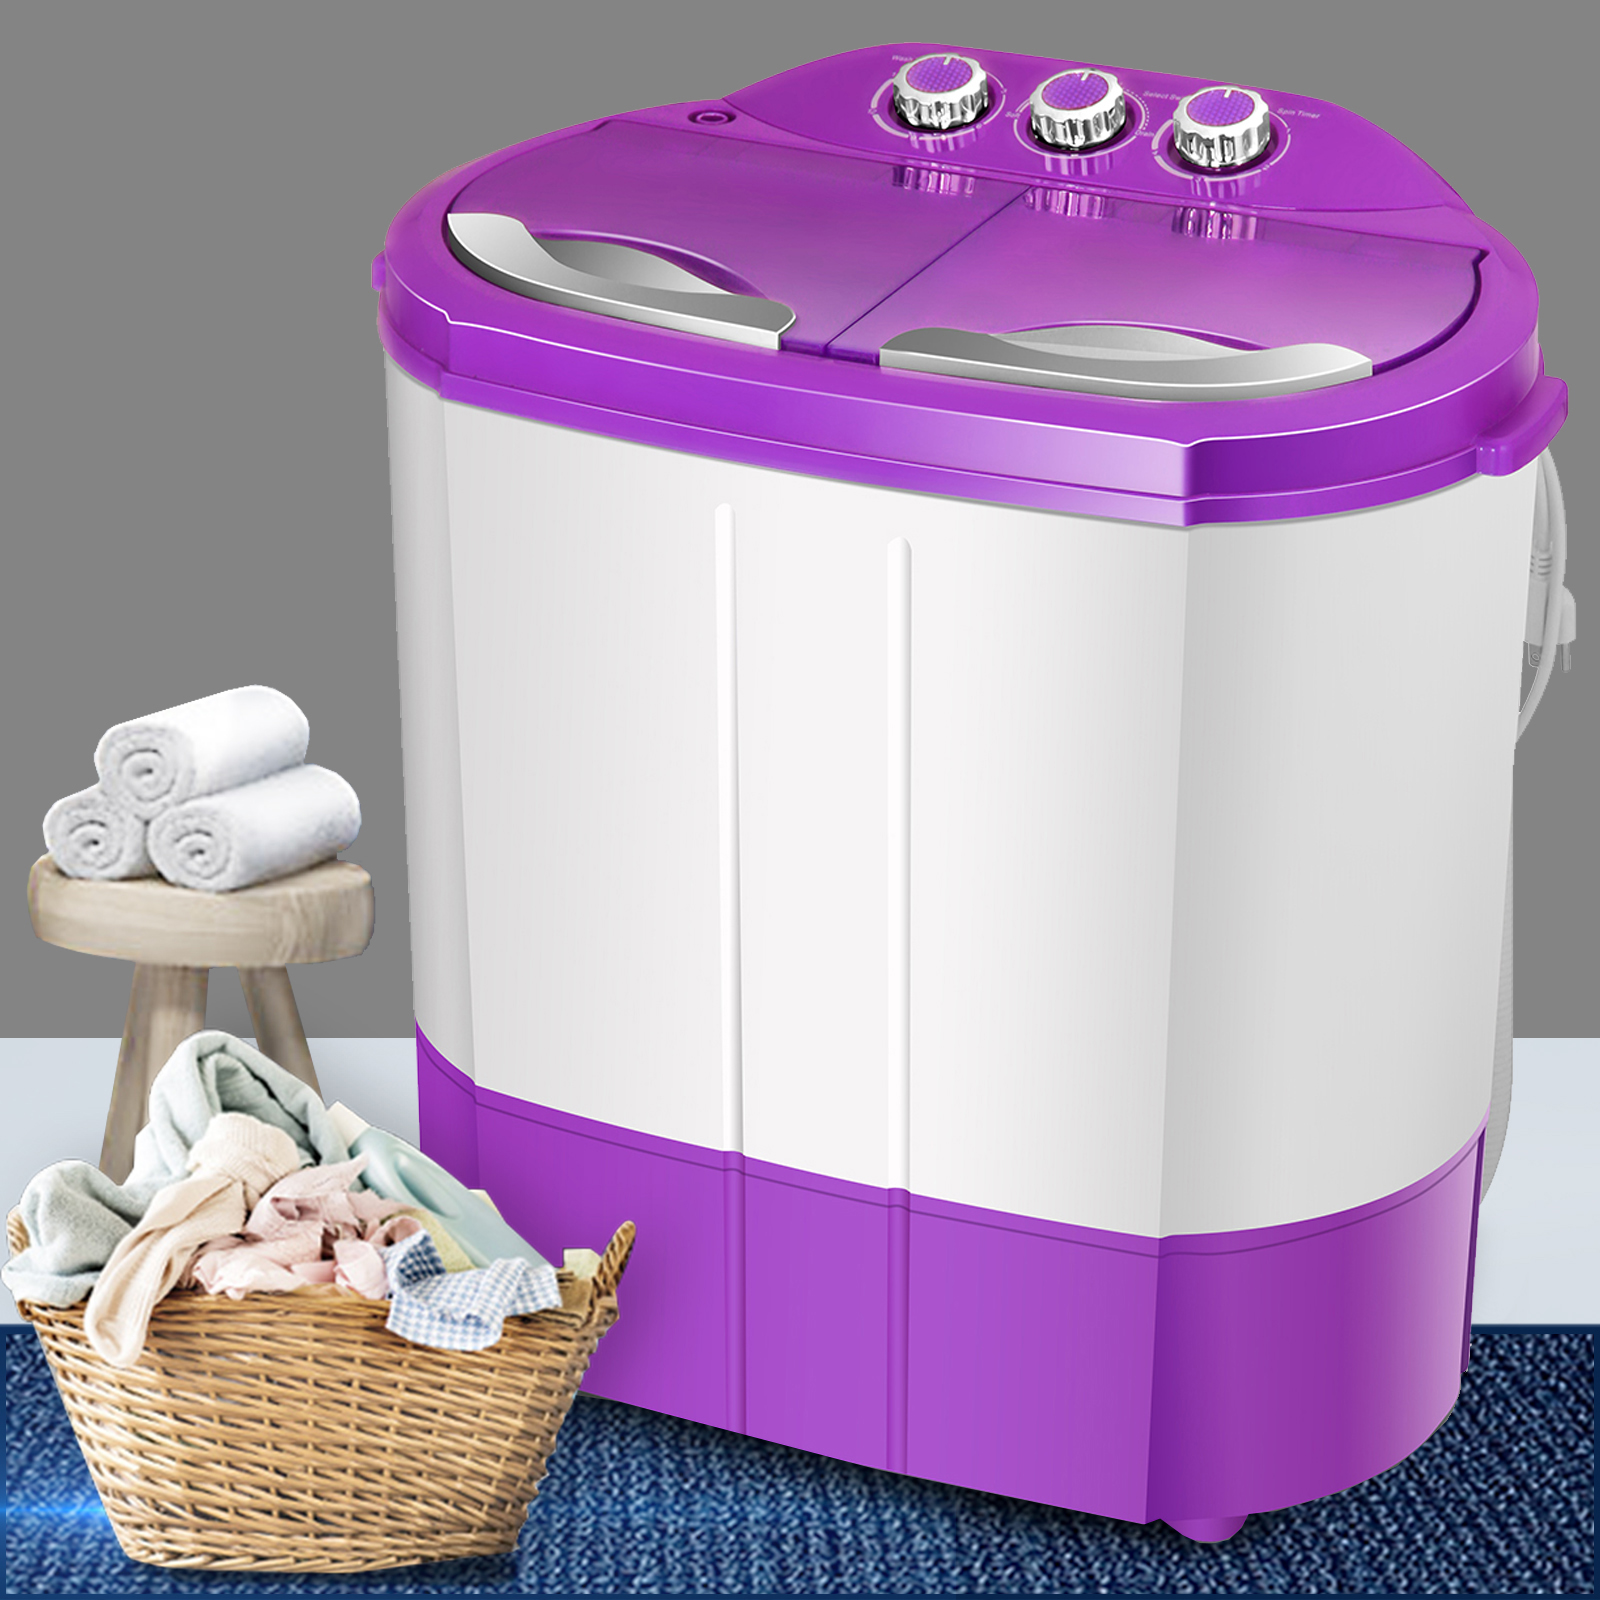 99lbs Portable Washing Machine Mini Laundry Washer And Dryer